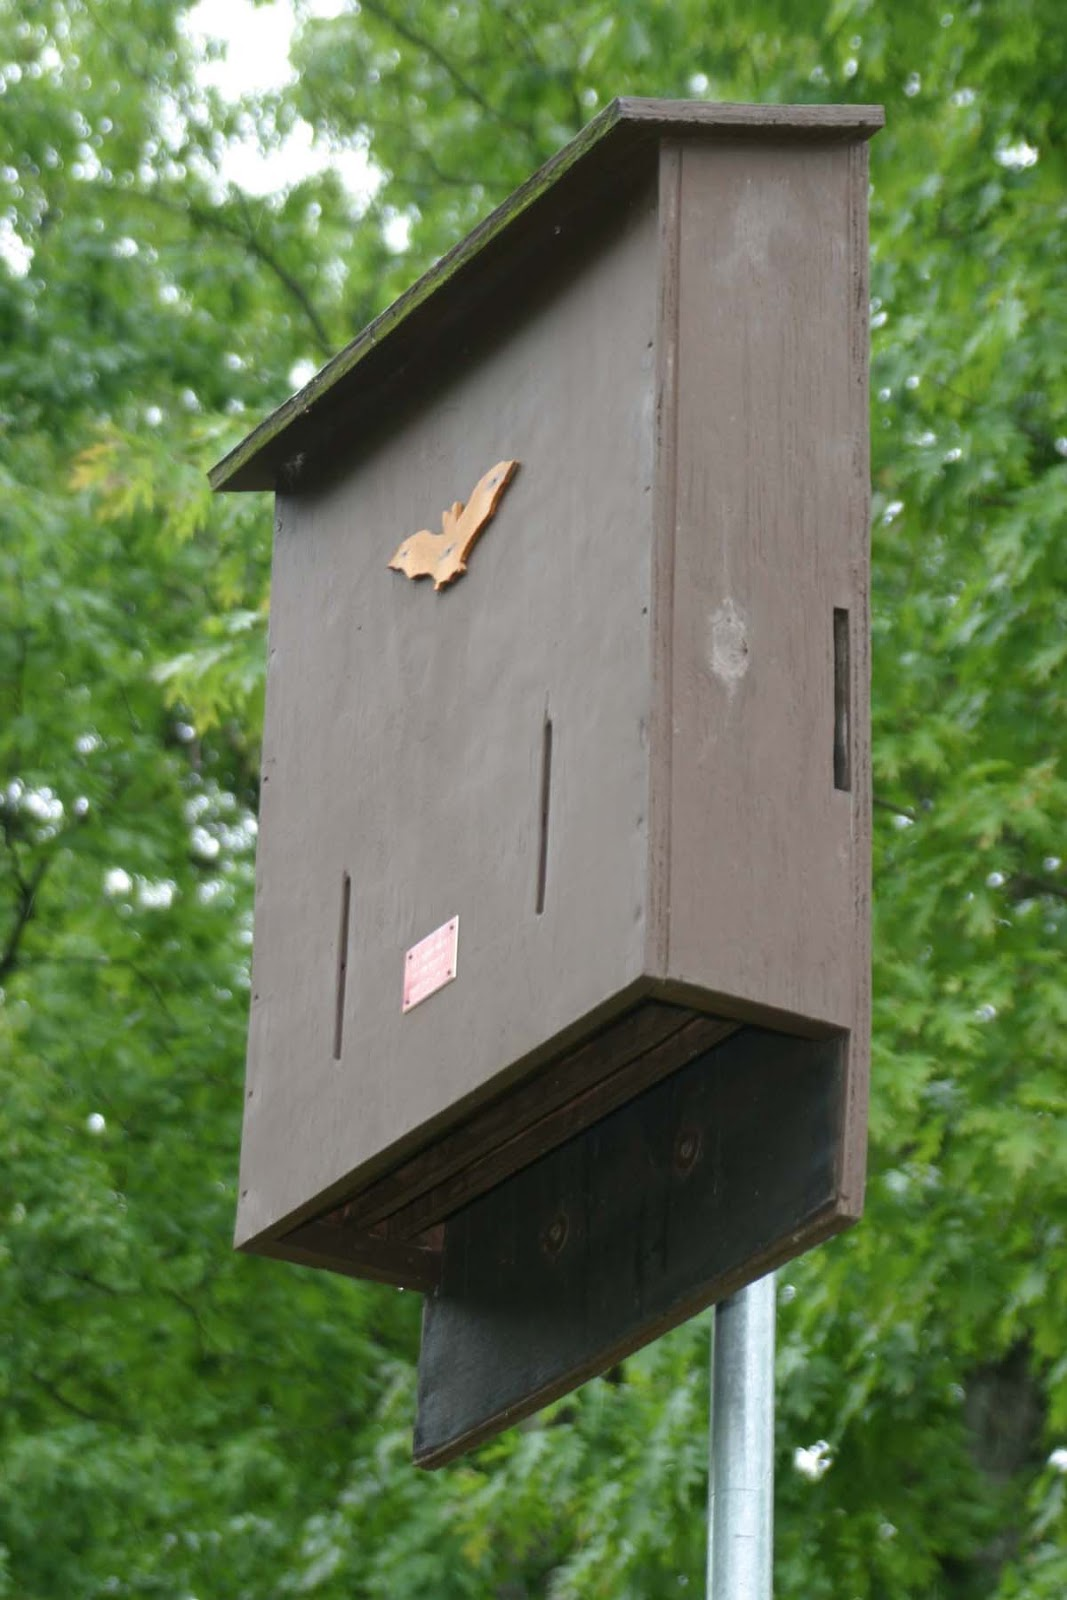 Mn dnr bat house plans House design plans